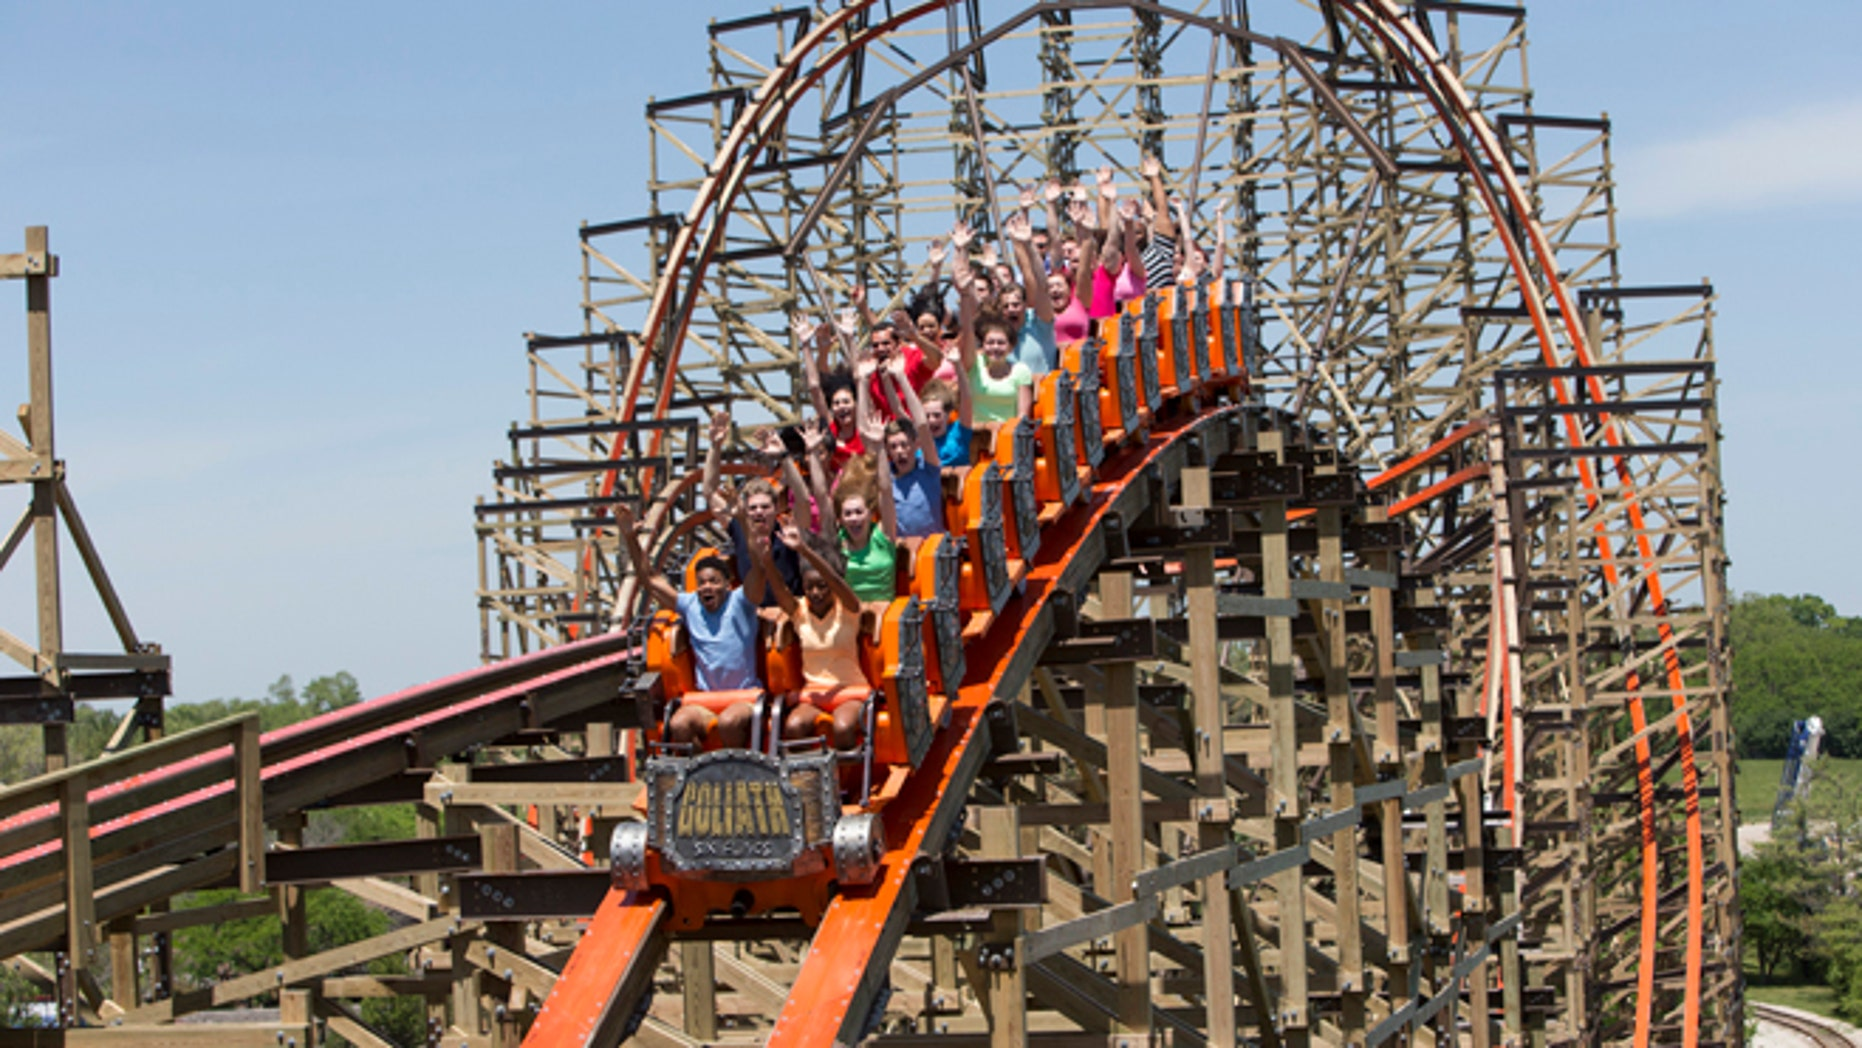 Six Flags has banned selfie sticks citing guest safety concerns.